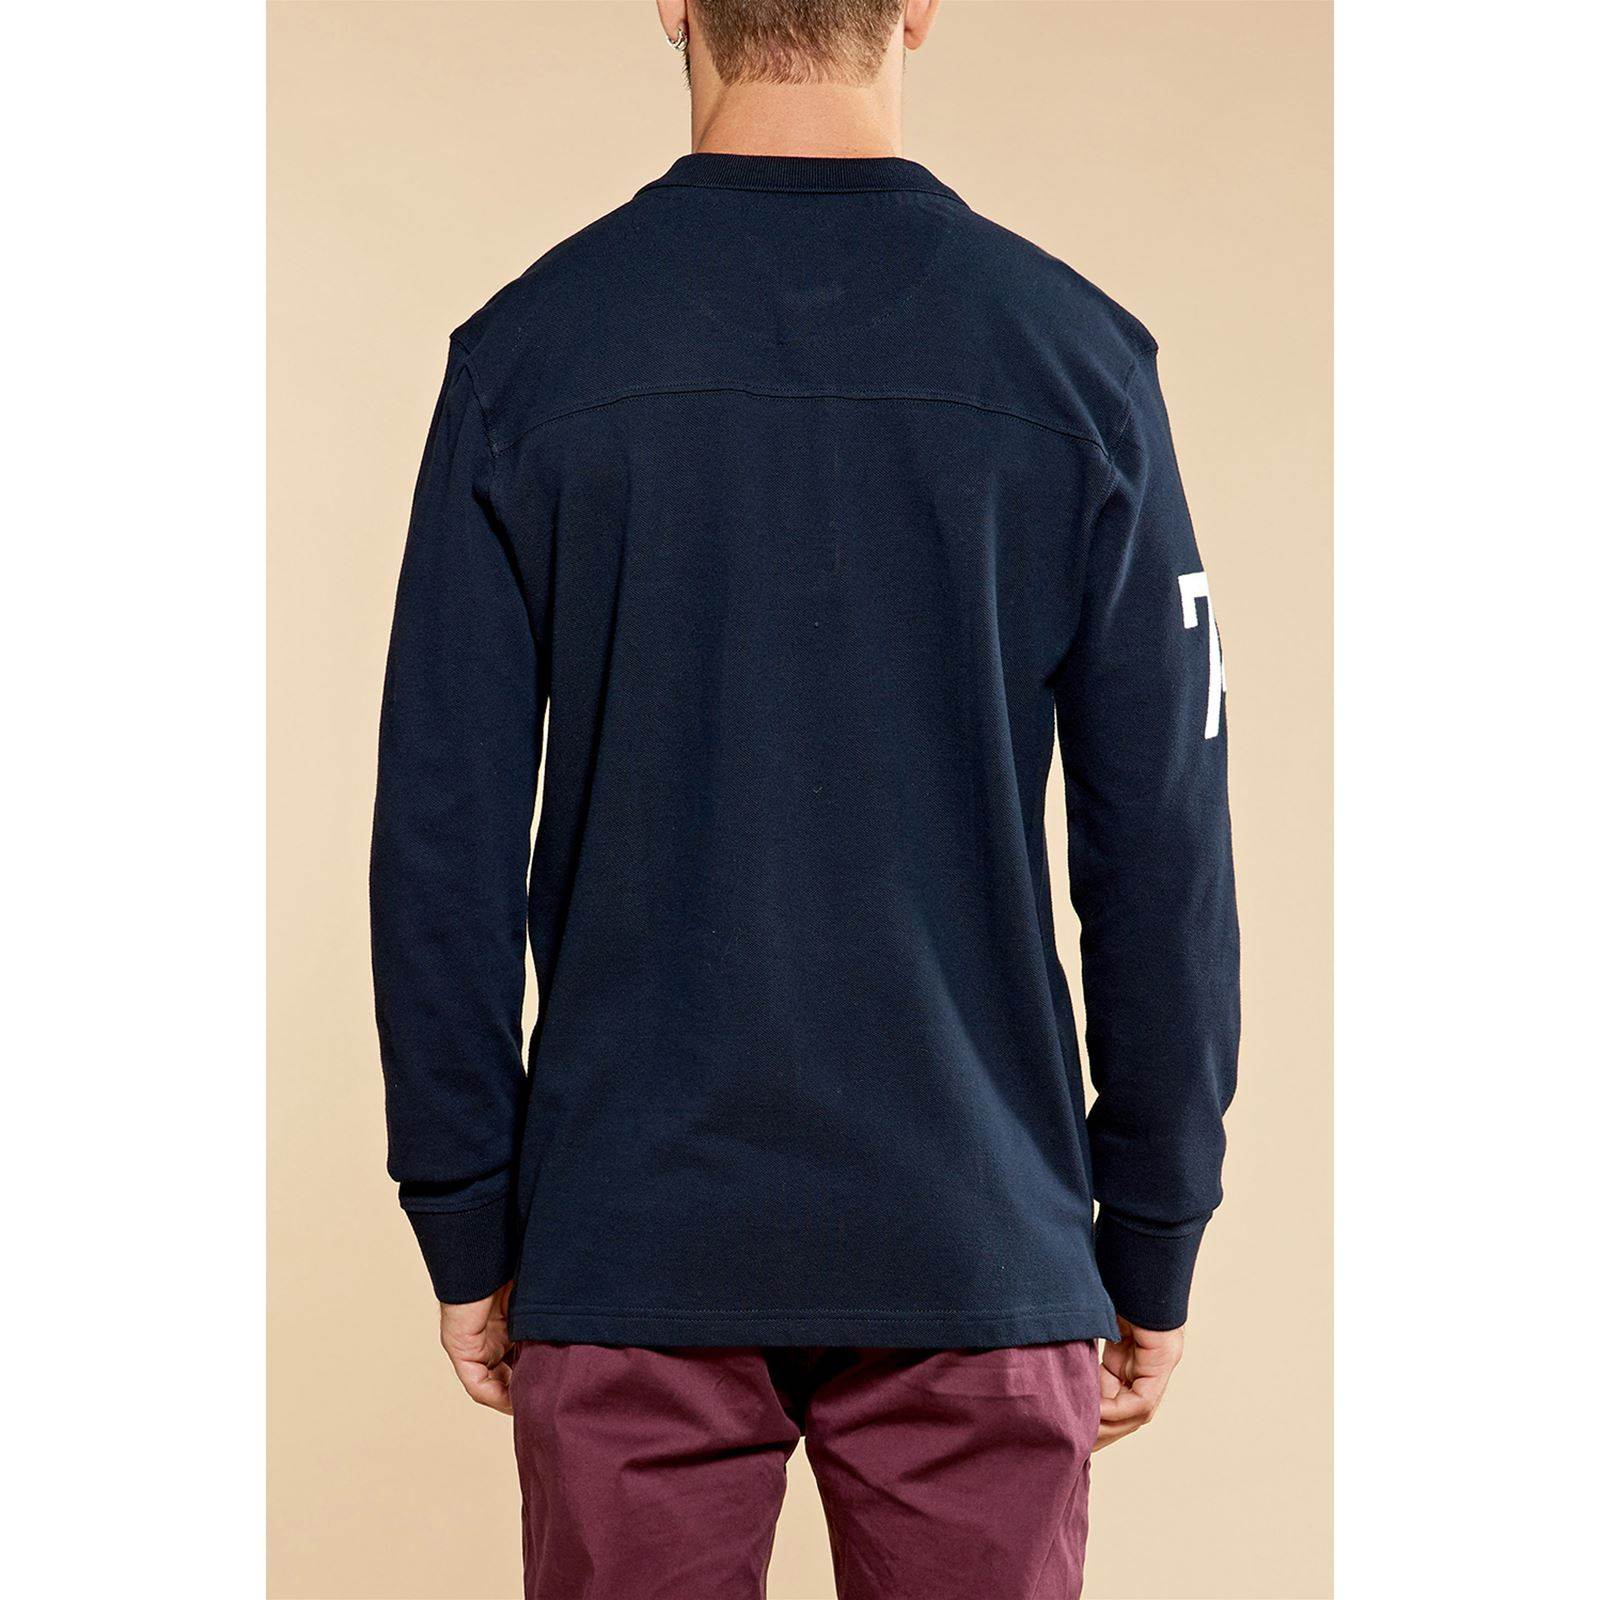 Marine Deeluxe Manches Bleu Homme Longues FoolingPolo V dsrthQC